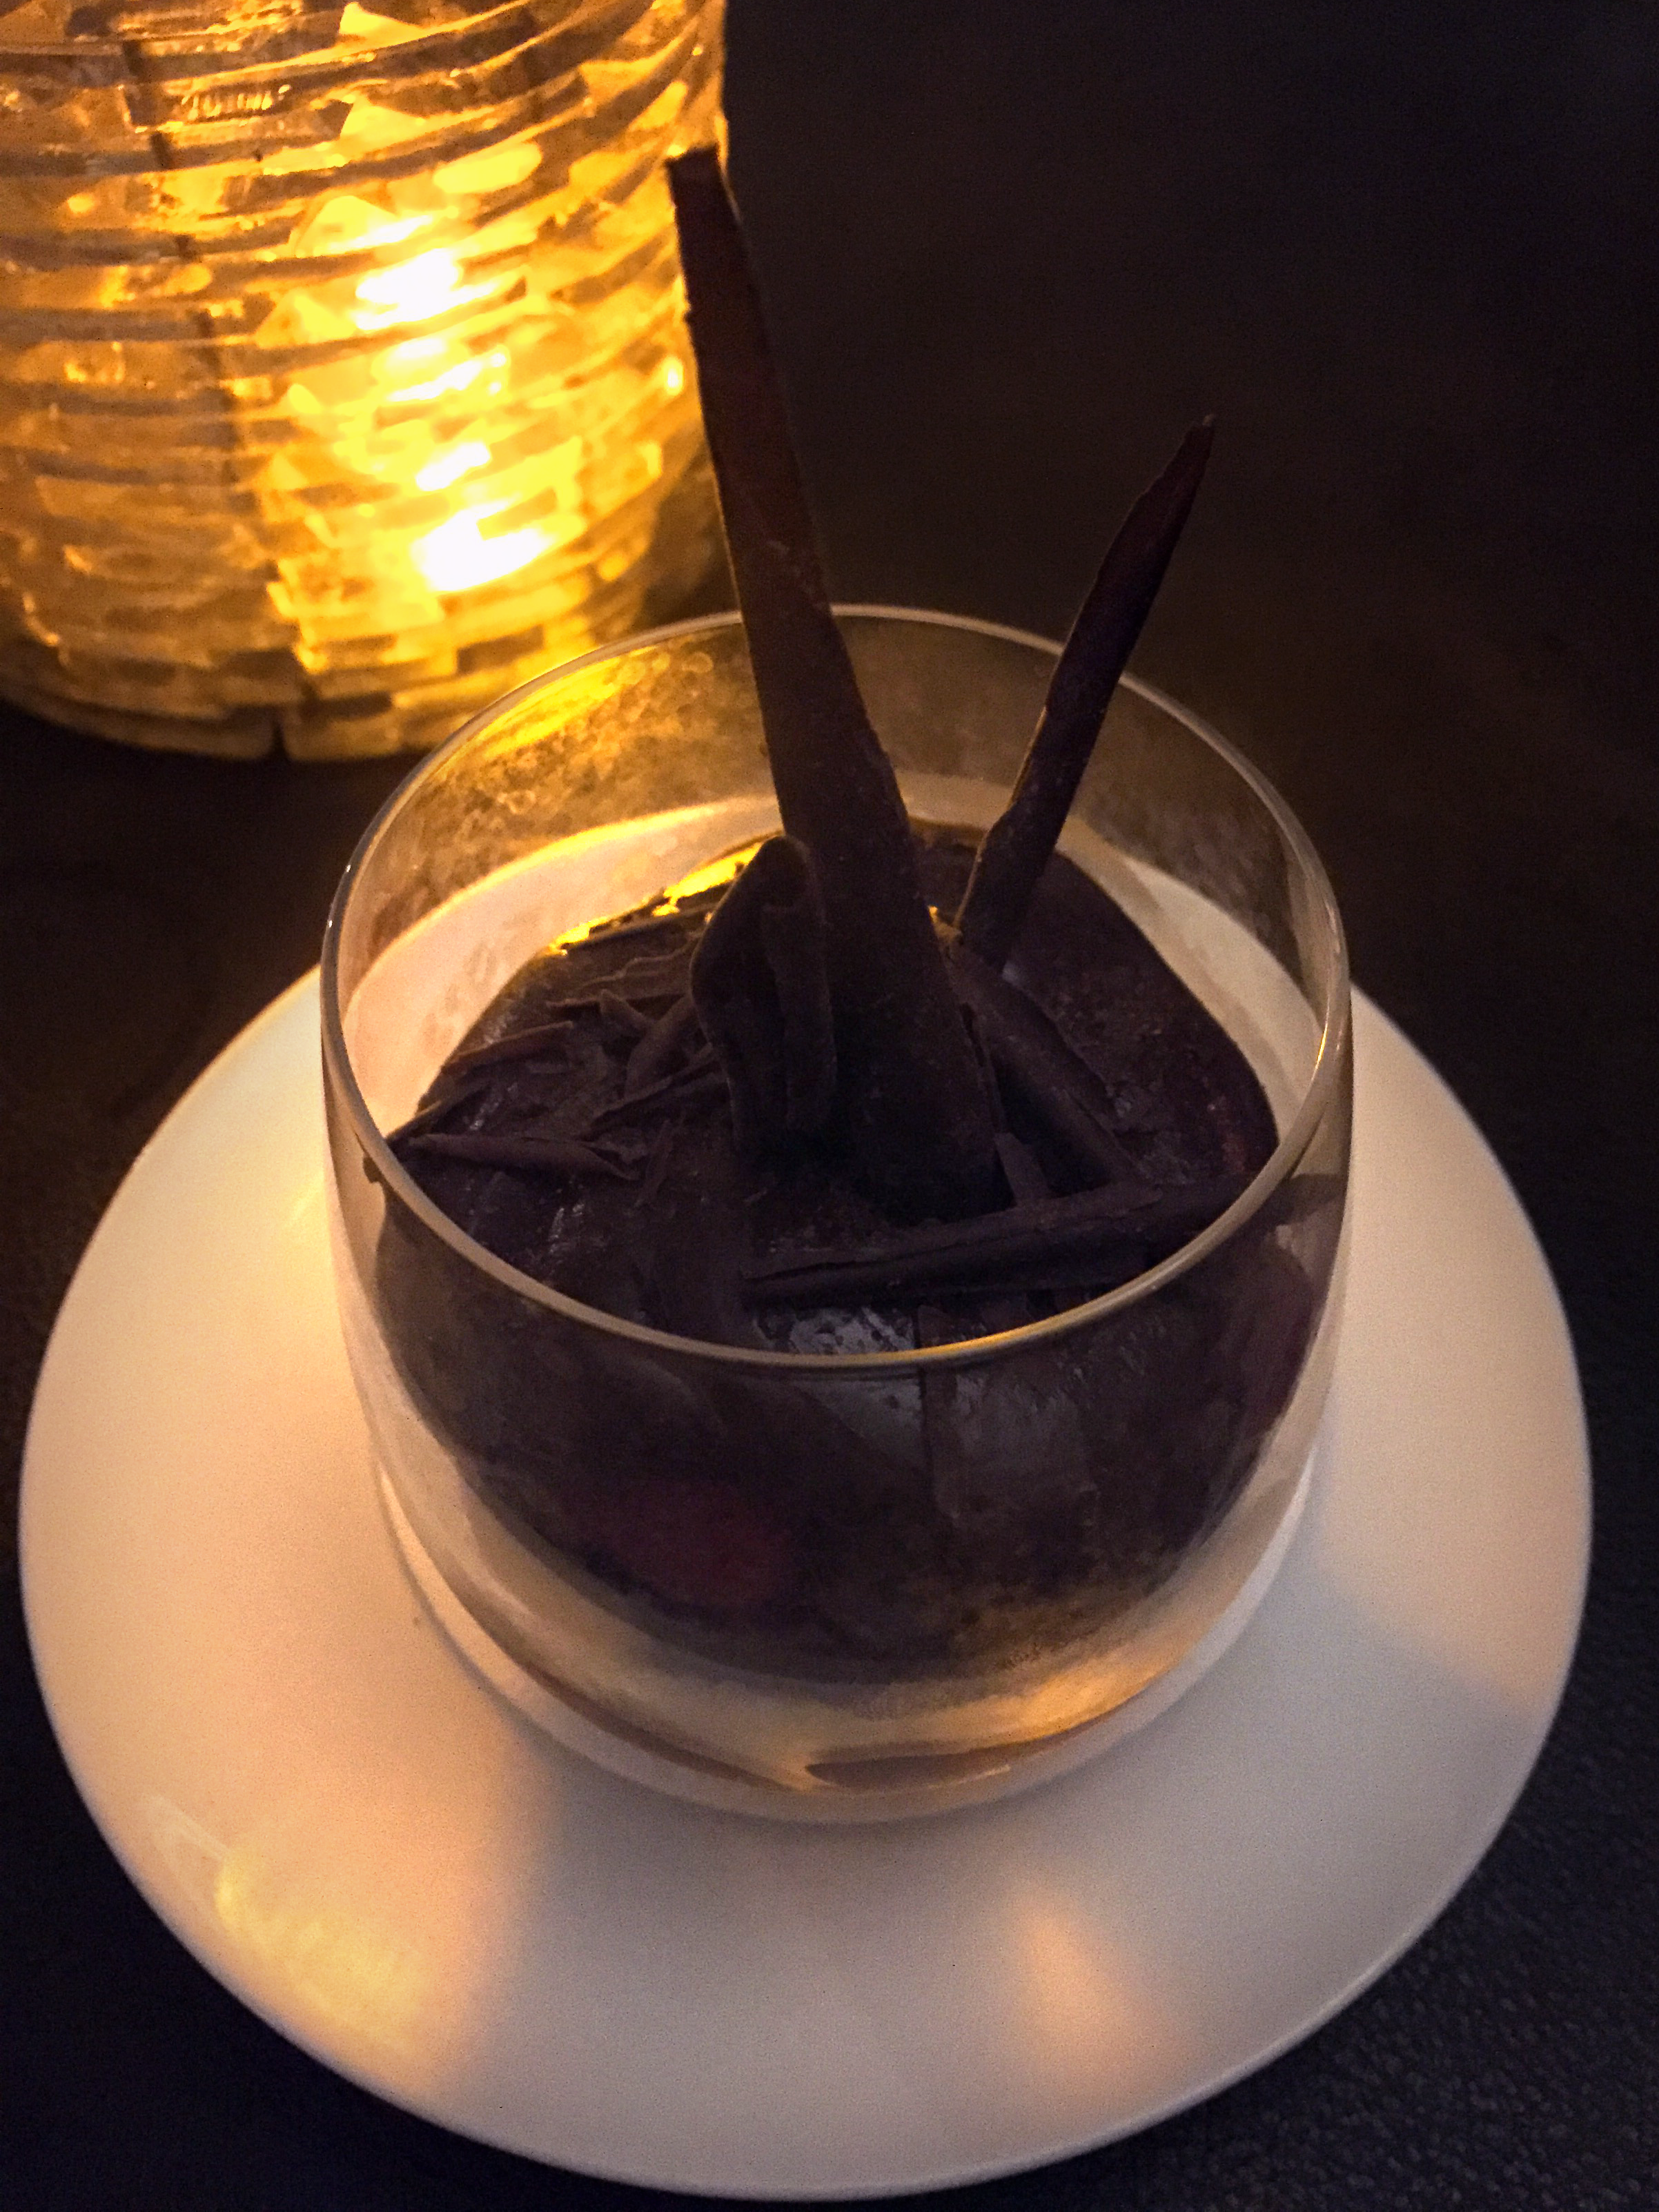 Chocolate avocado mousse from Duo